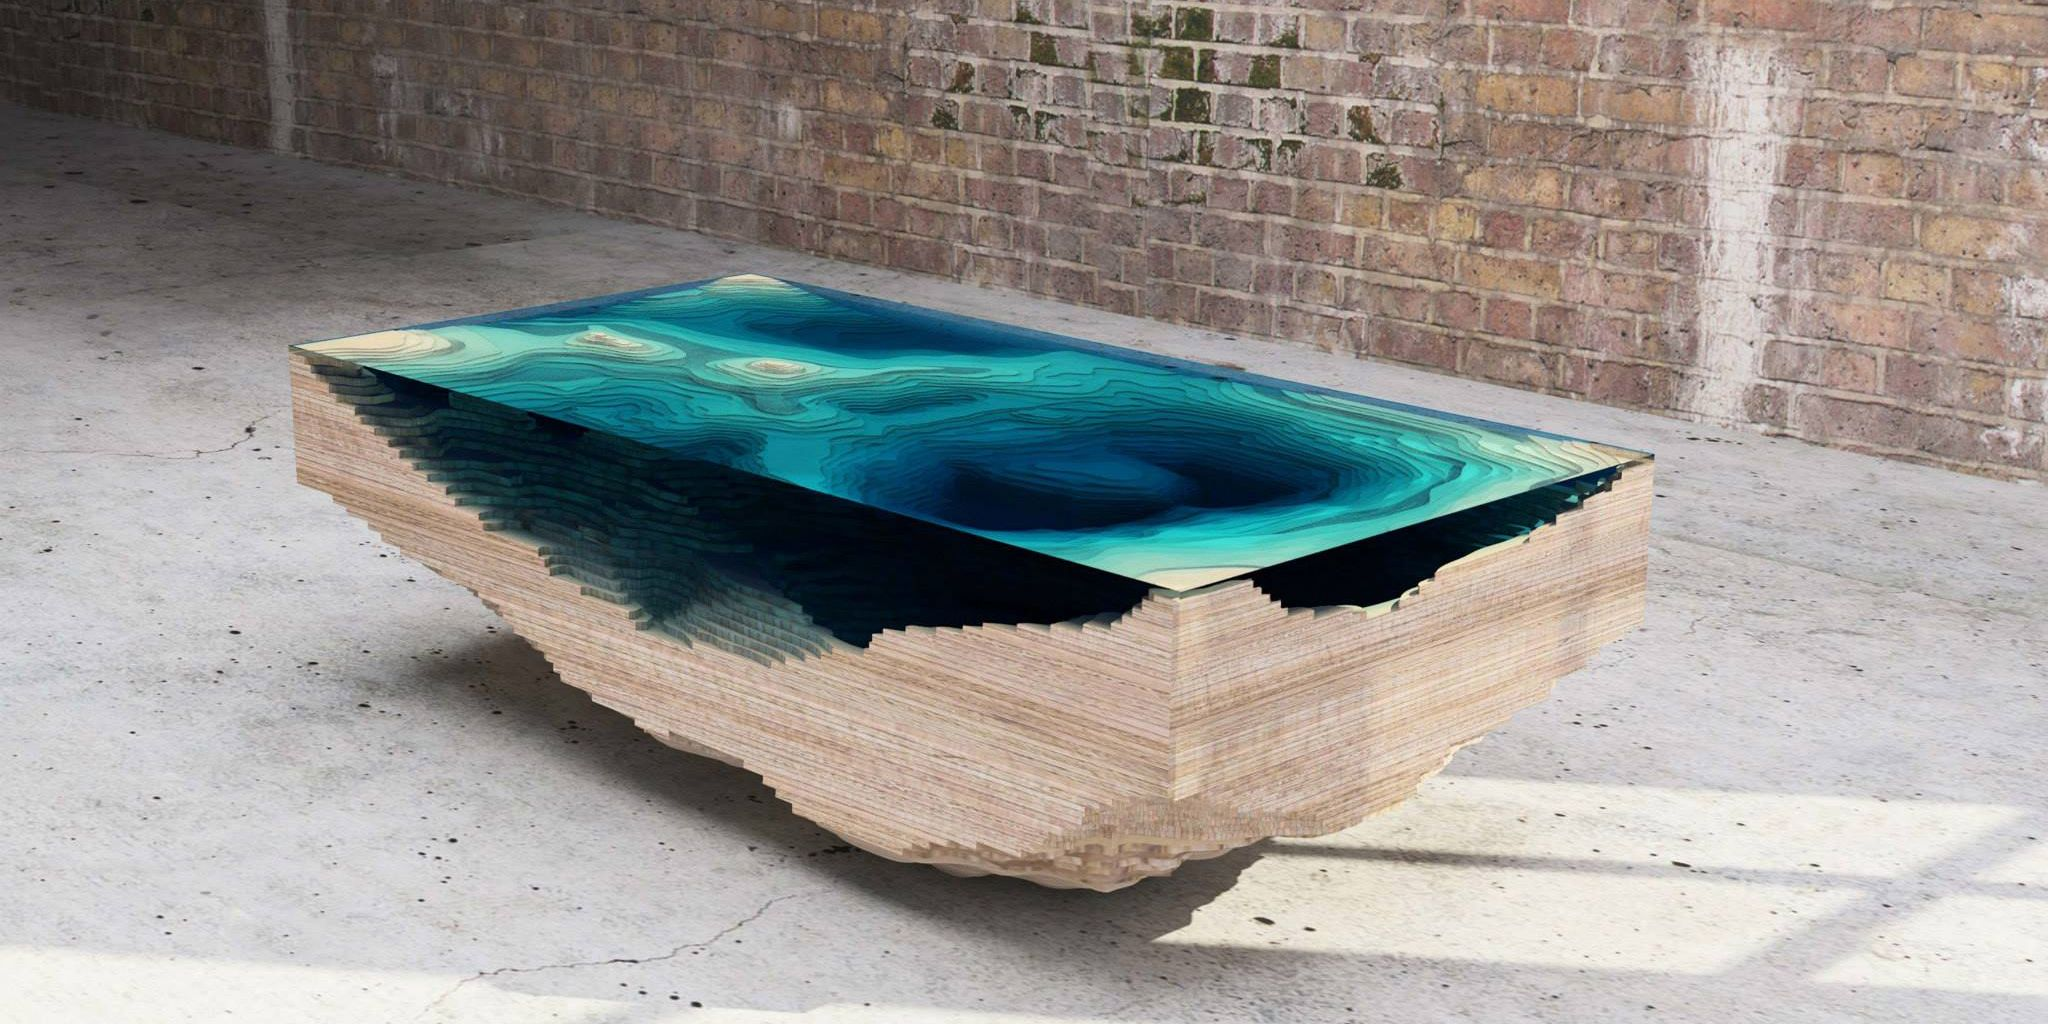 This Amazing Layered Glass Table Mimics The Depths The Ocean